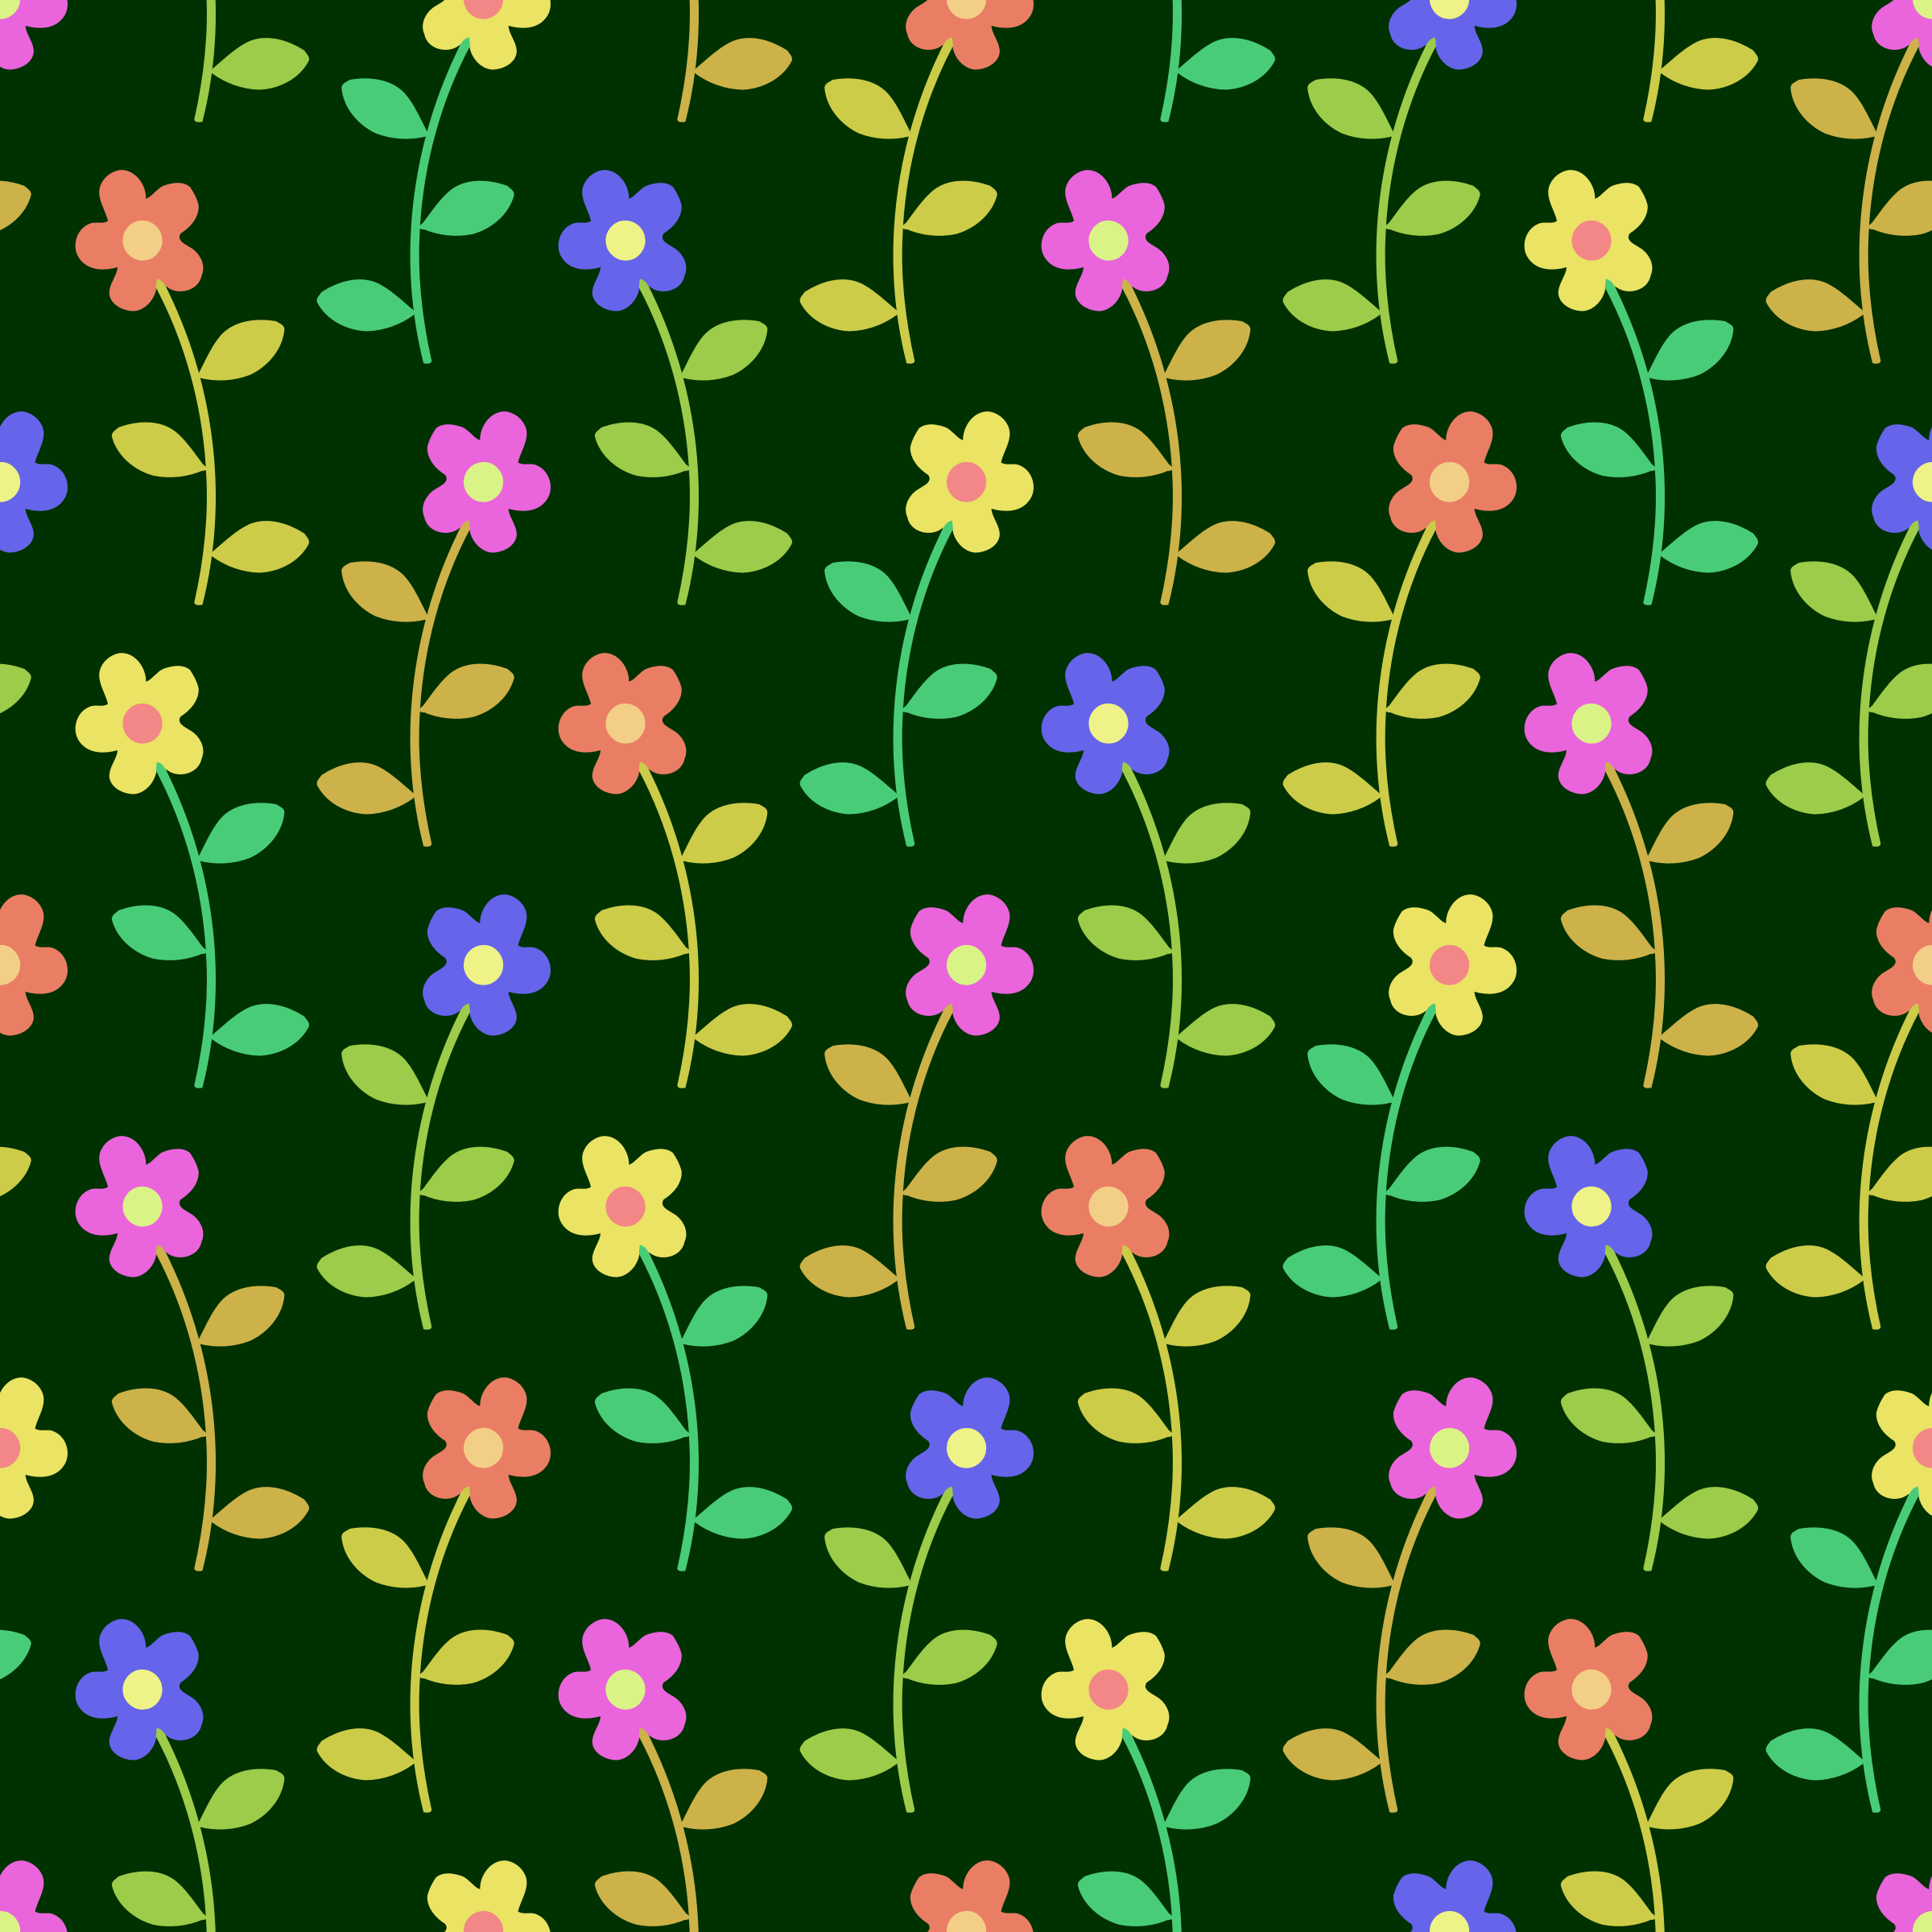 Floral pattern 8 (colour 2) by Firkin